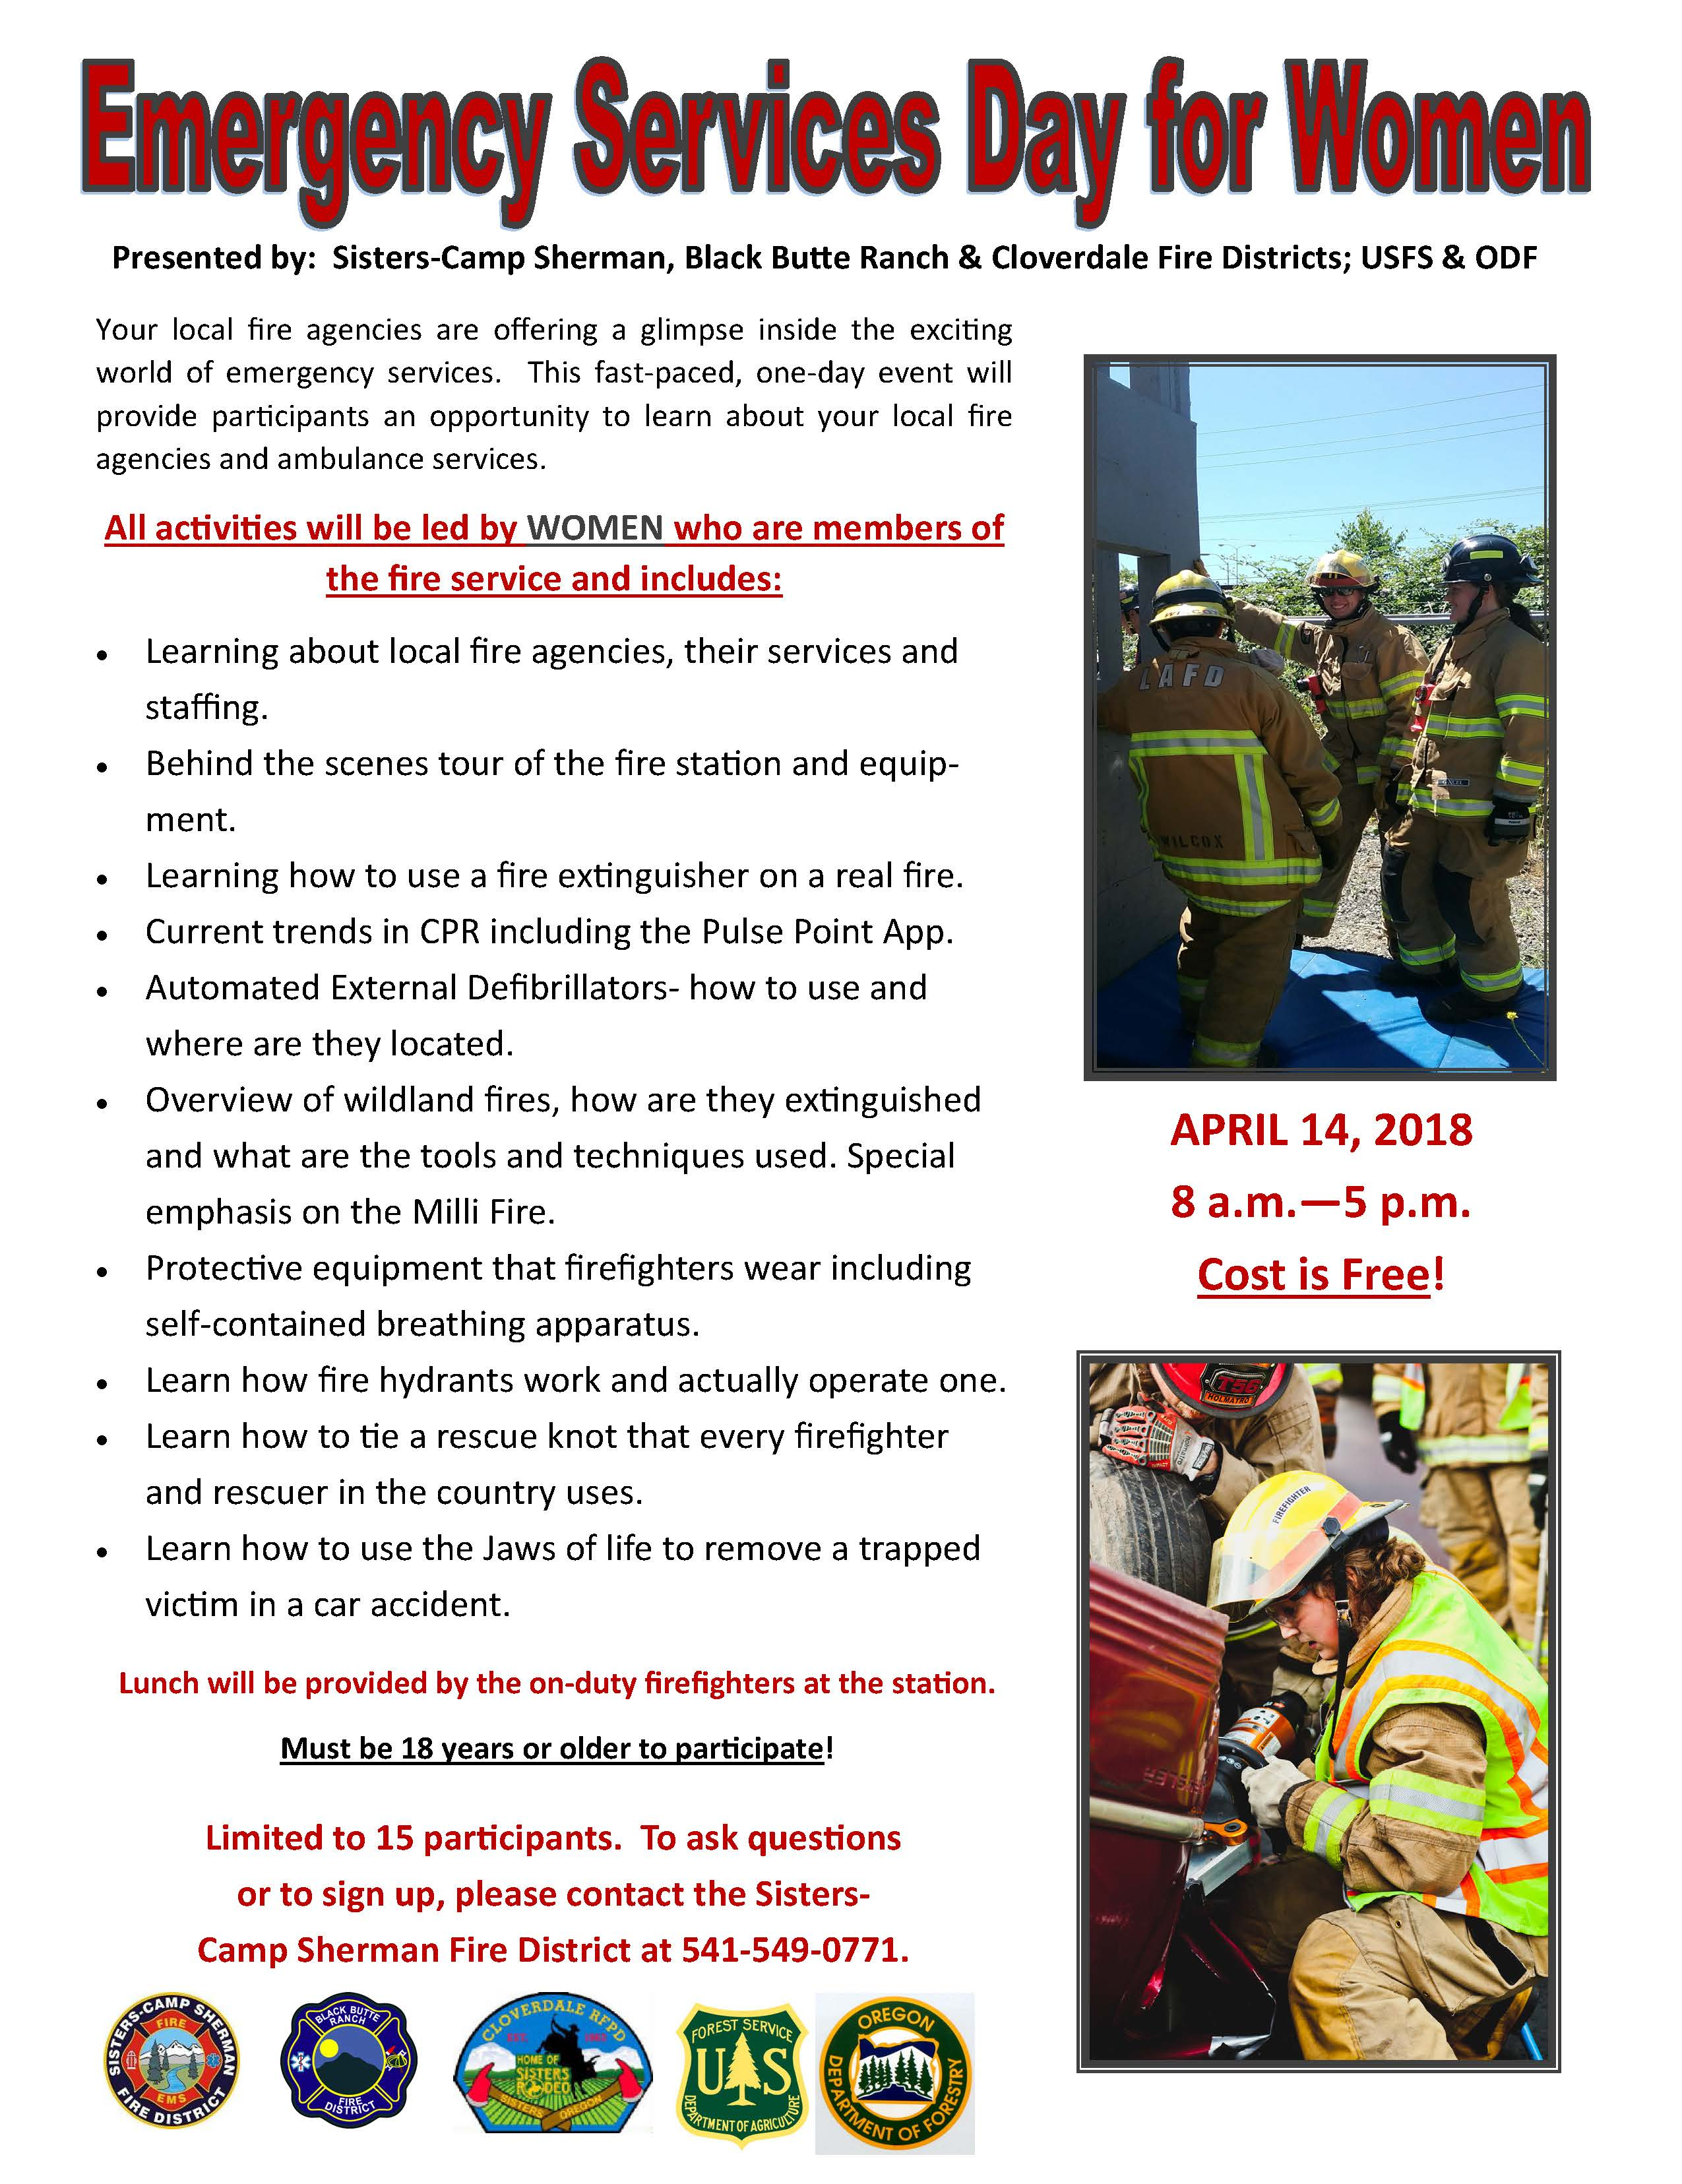 Press Releases Archives - Sisters - Camp Sherman Fire District